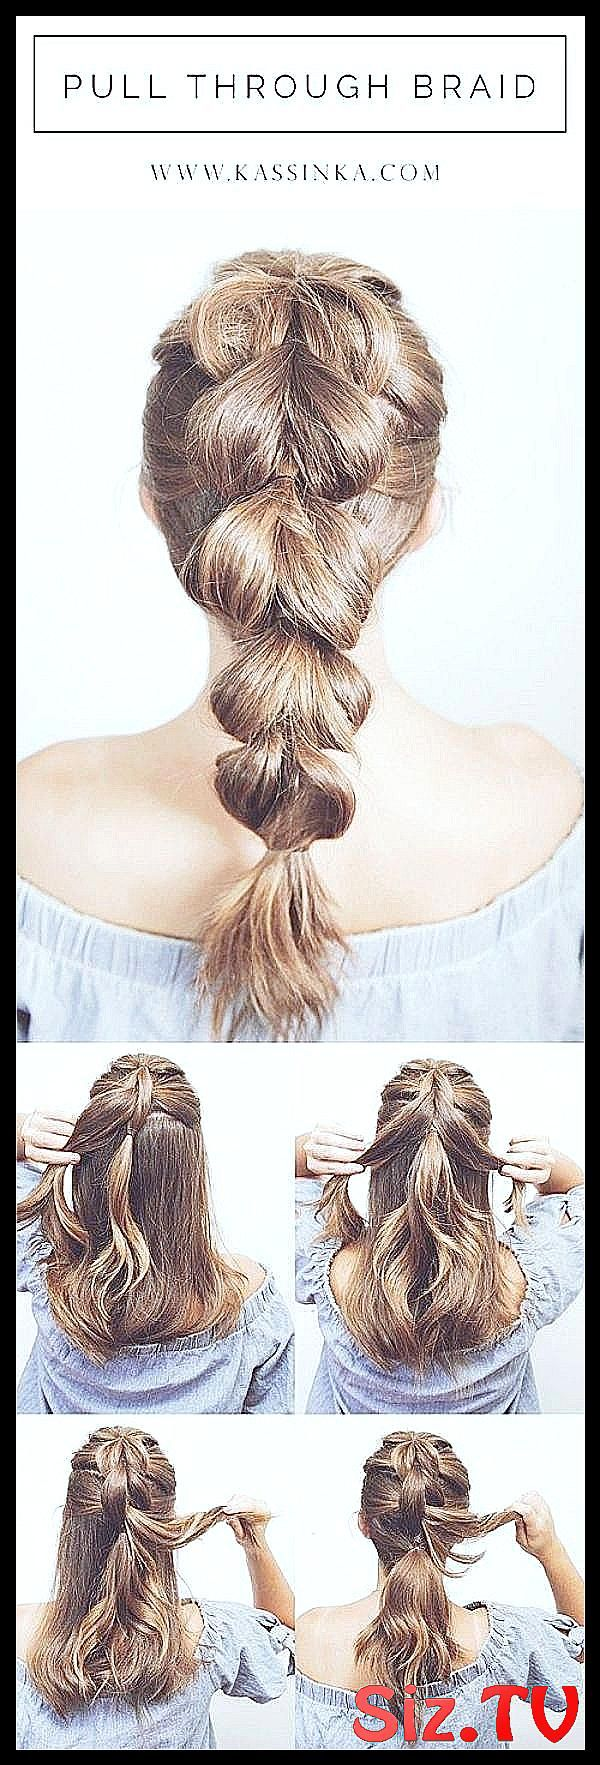 45 Kids Easy Hairstyle Tutorials for Professionals #Working # Professionals #The #easy # Hairstyles